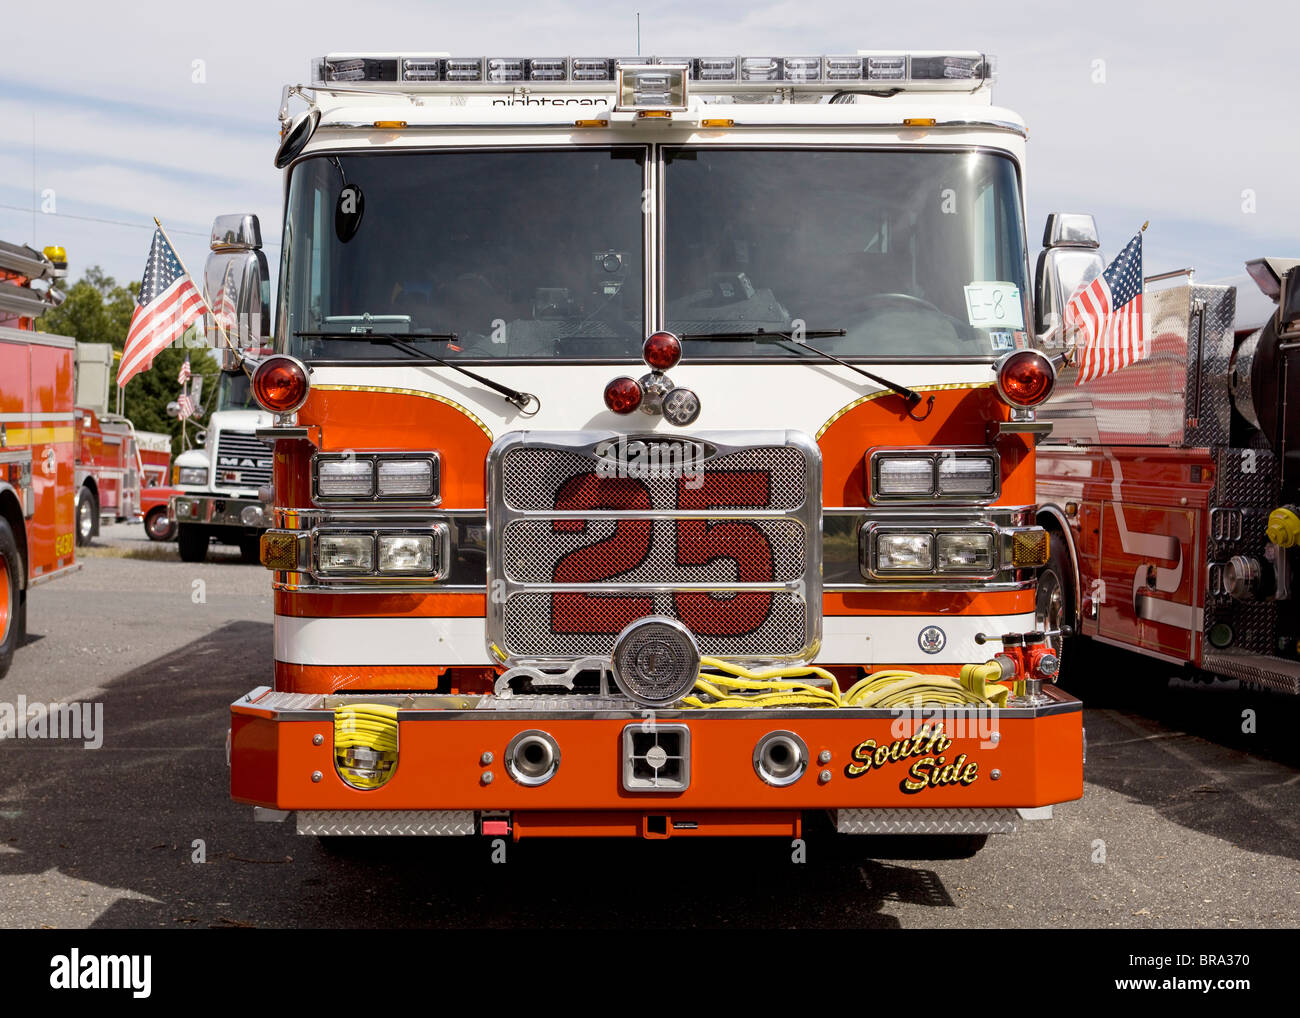 Modern fire truck front end - Stock Image